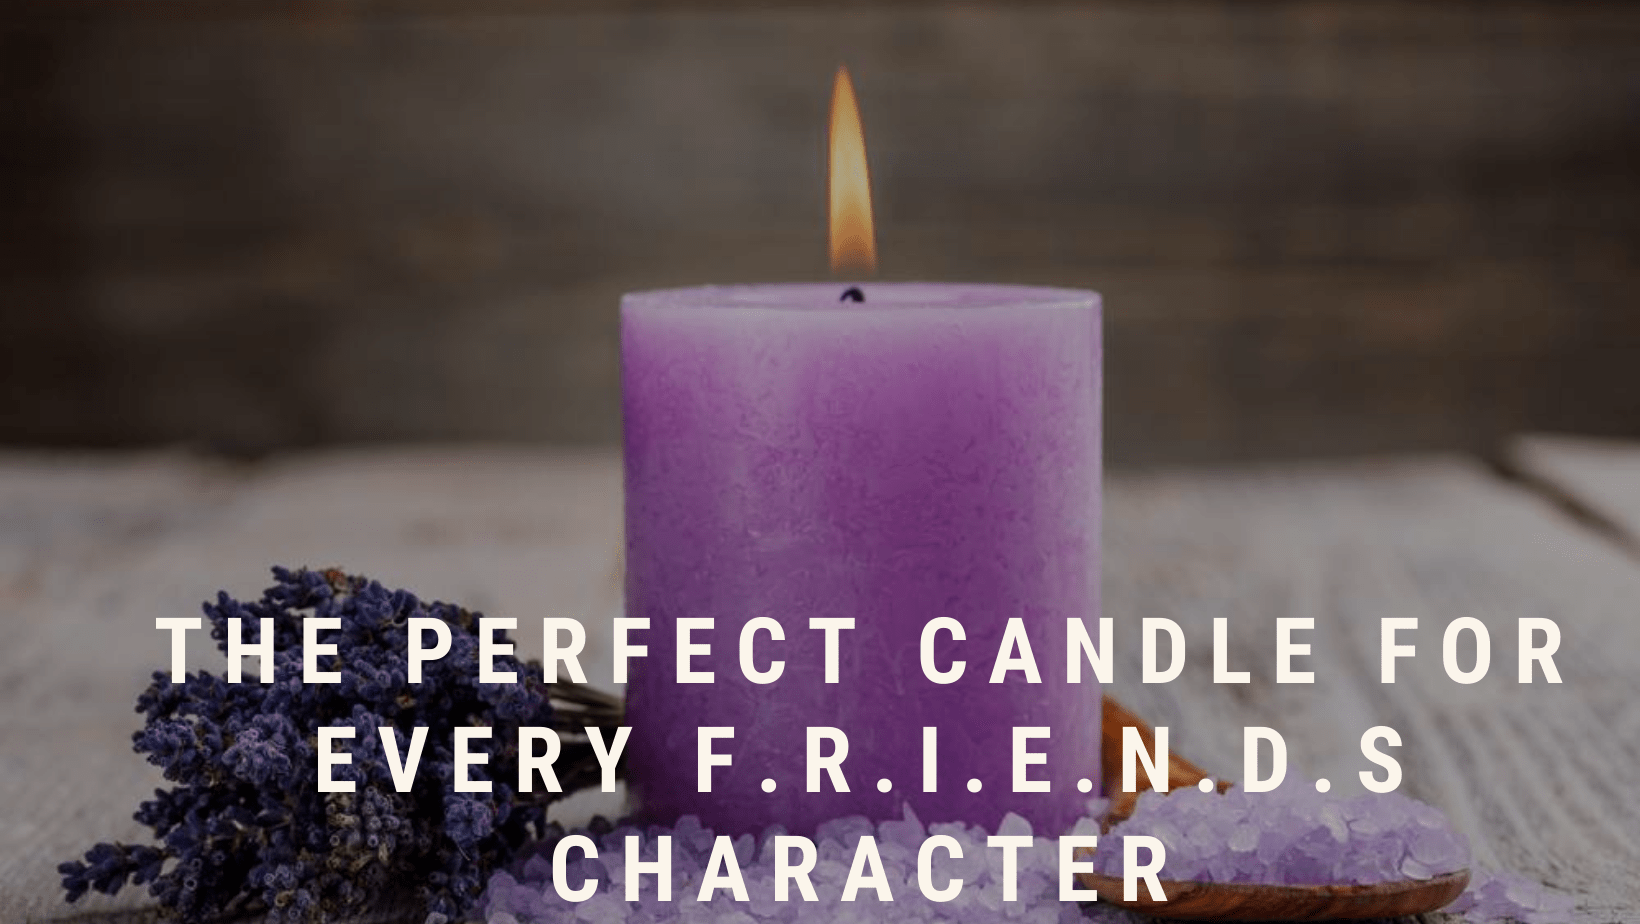 The perfect candle for every F.R.I.E.N.D.S character